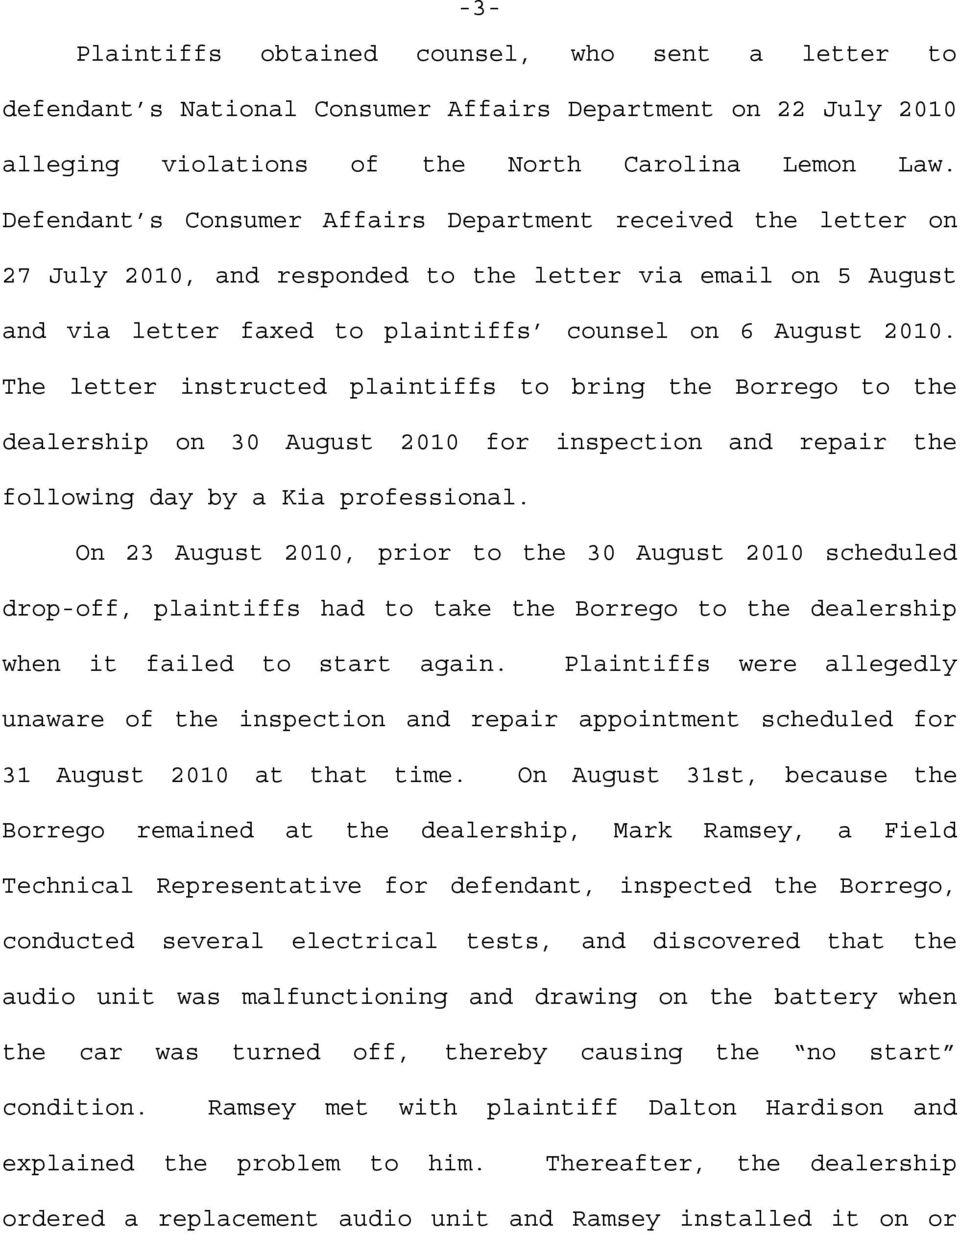 The letter instructed plaintiffs to bring the Borrego to the dealership on 30 August 2010 for inspection and repair the following day by a Kia professional.